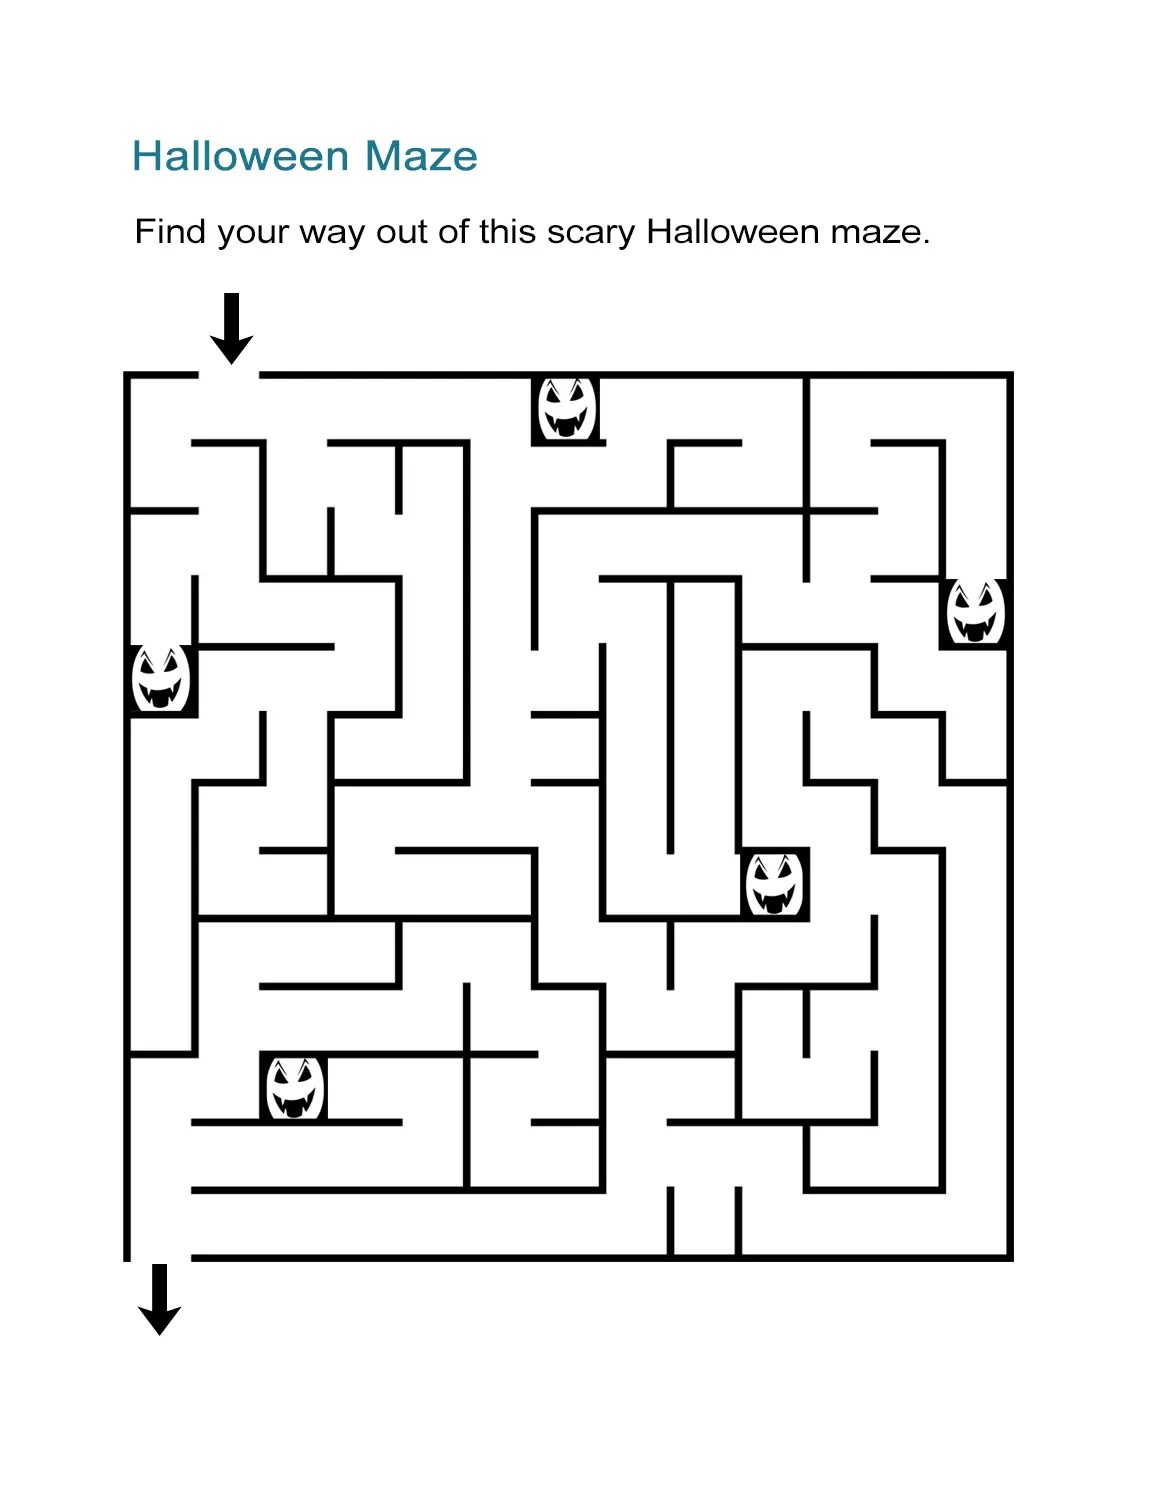 Halloween Maze Printable Find Your Way Out Of The Maze